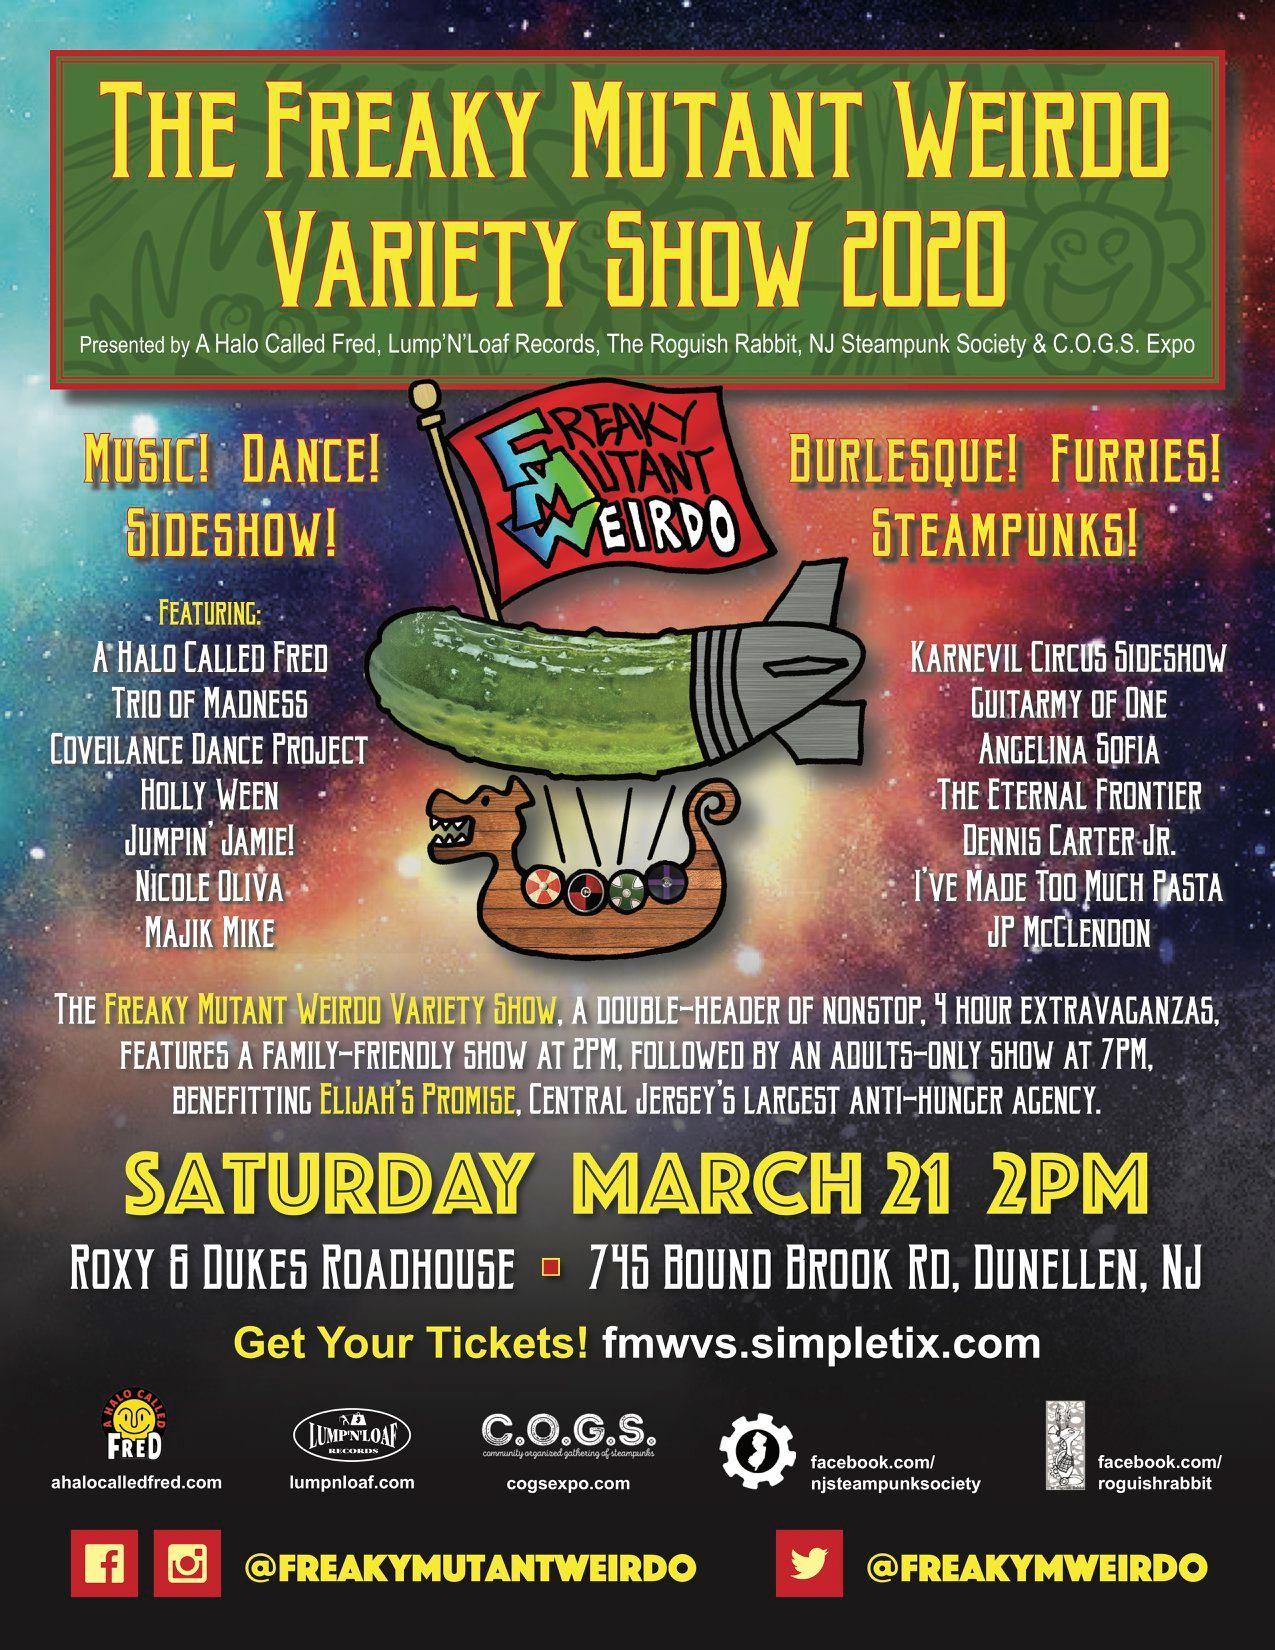 Get Ready for the 3rd Annual Freaky Mutant Weirdo Variety Show!